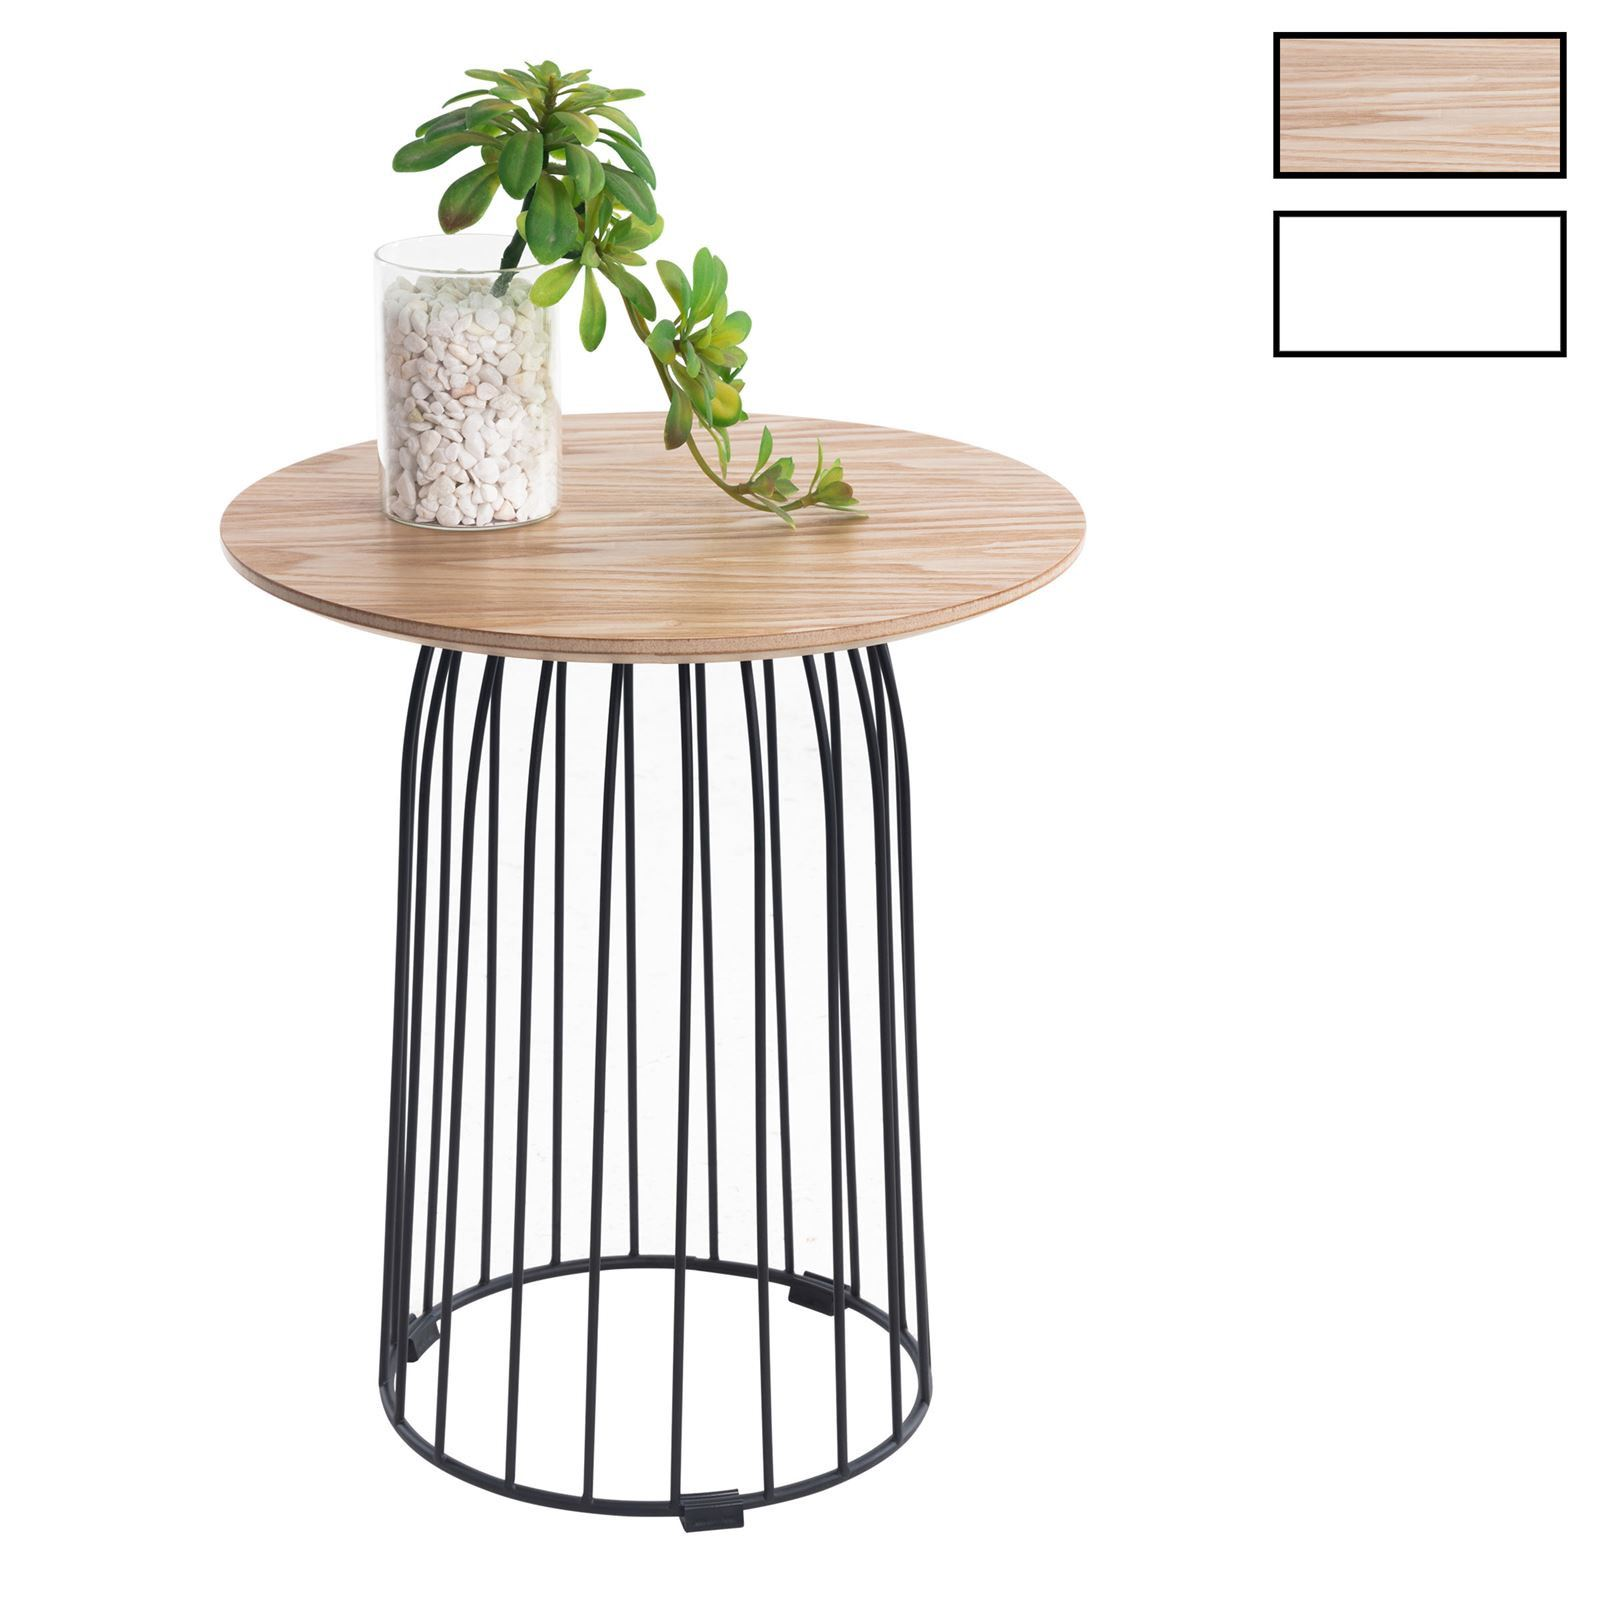 Malle Comme Table Basse table basse ronde salamanca